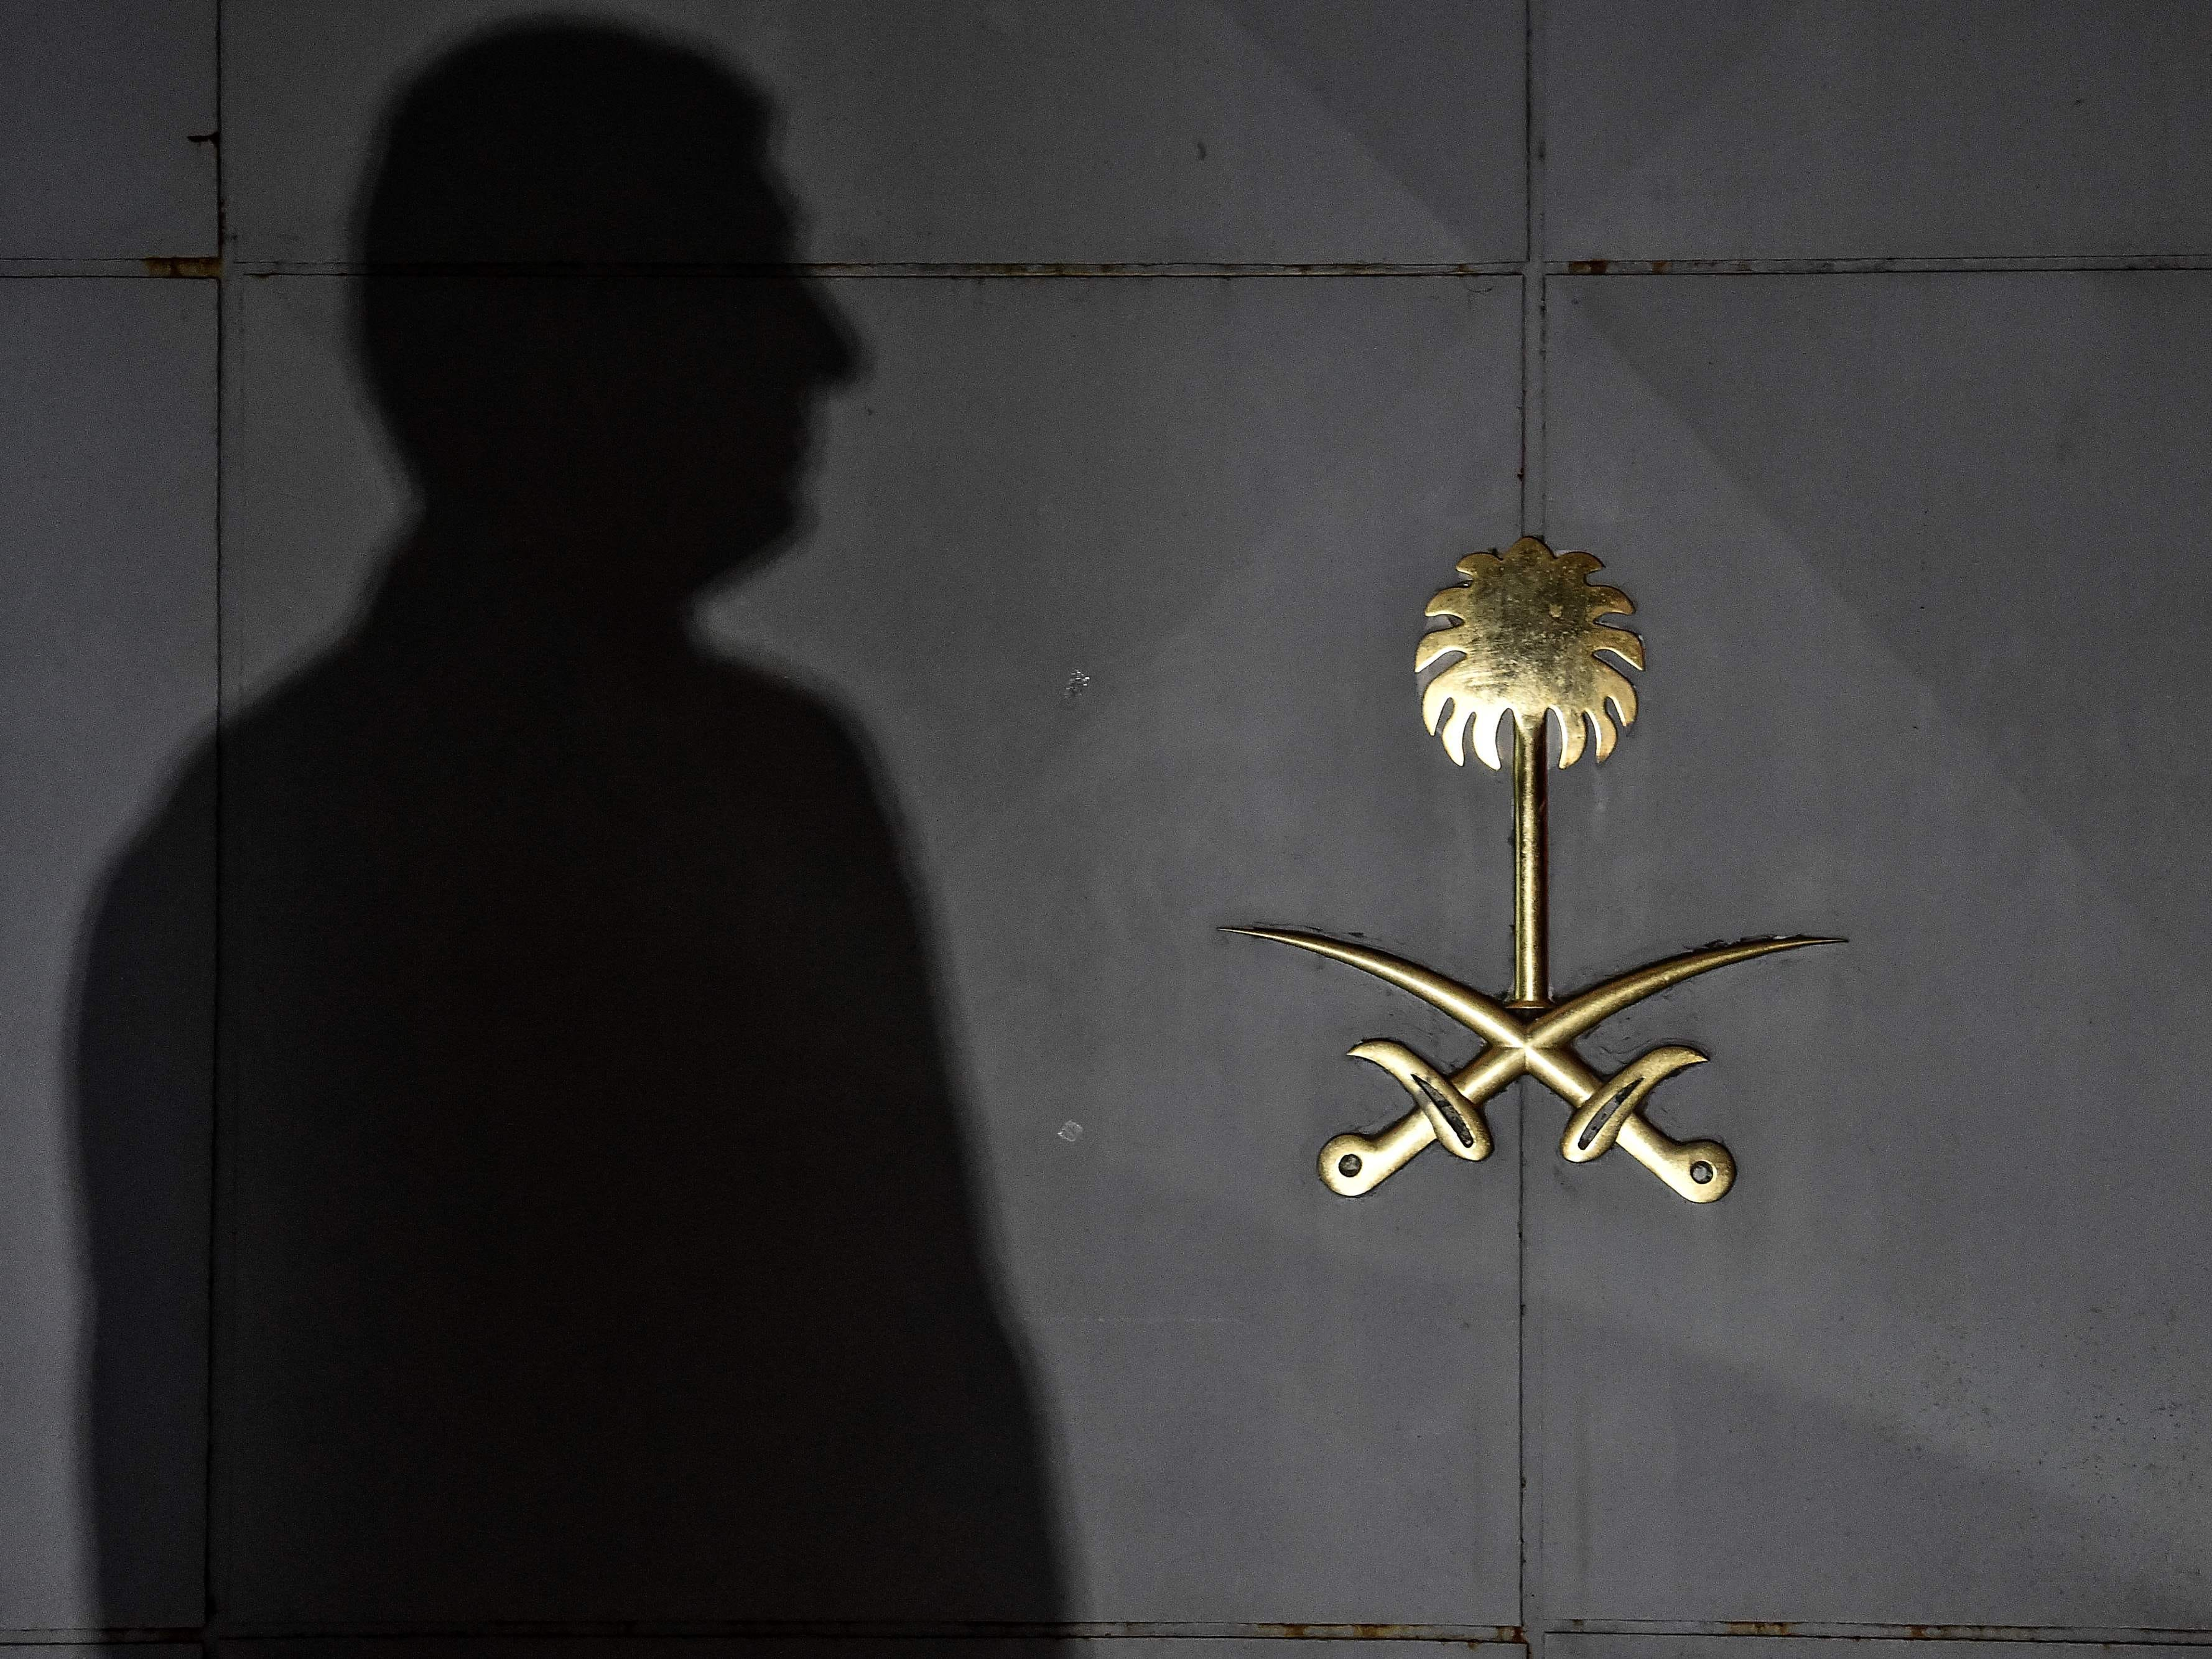 Security members of the consulate wait in front of the gate door of the Saudi Arabian consulate, Oct. 17, 2018, in Istanbul.